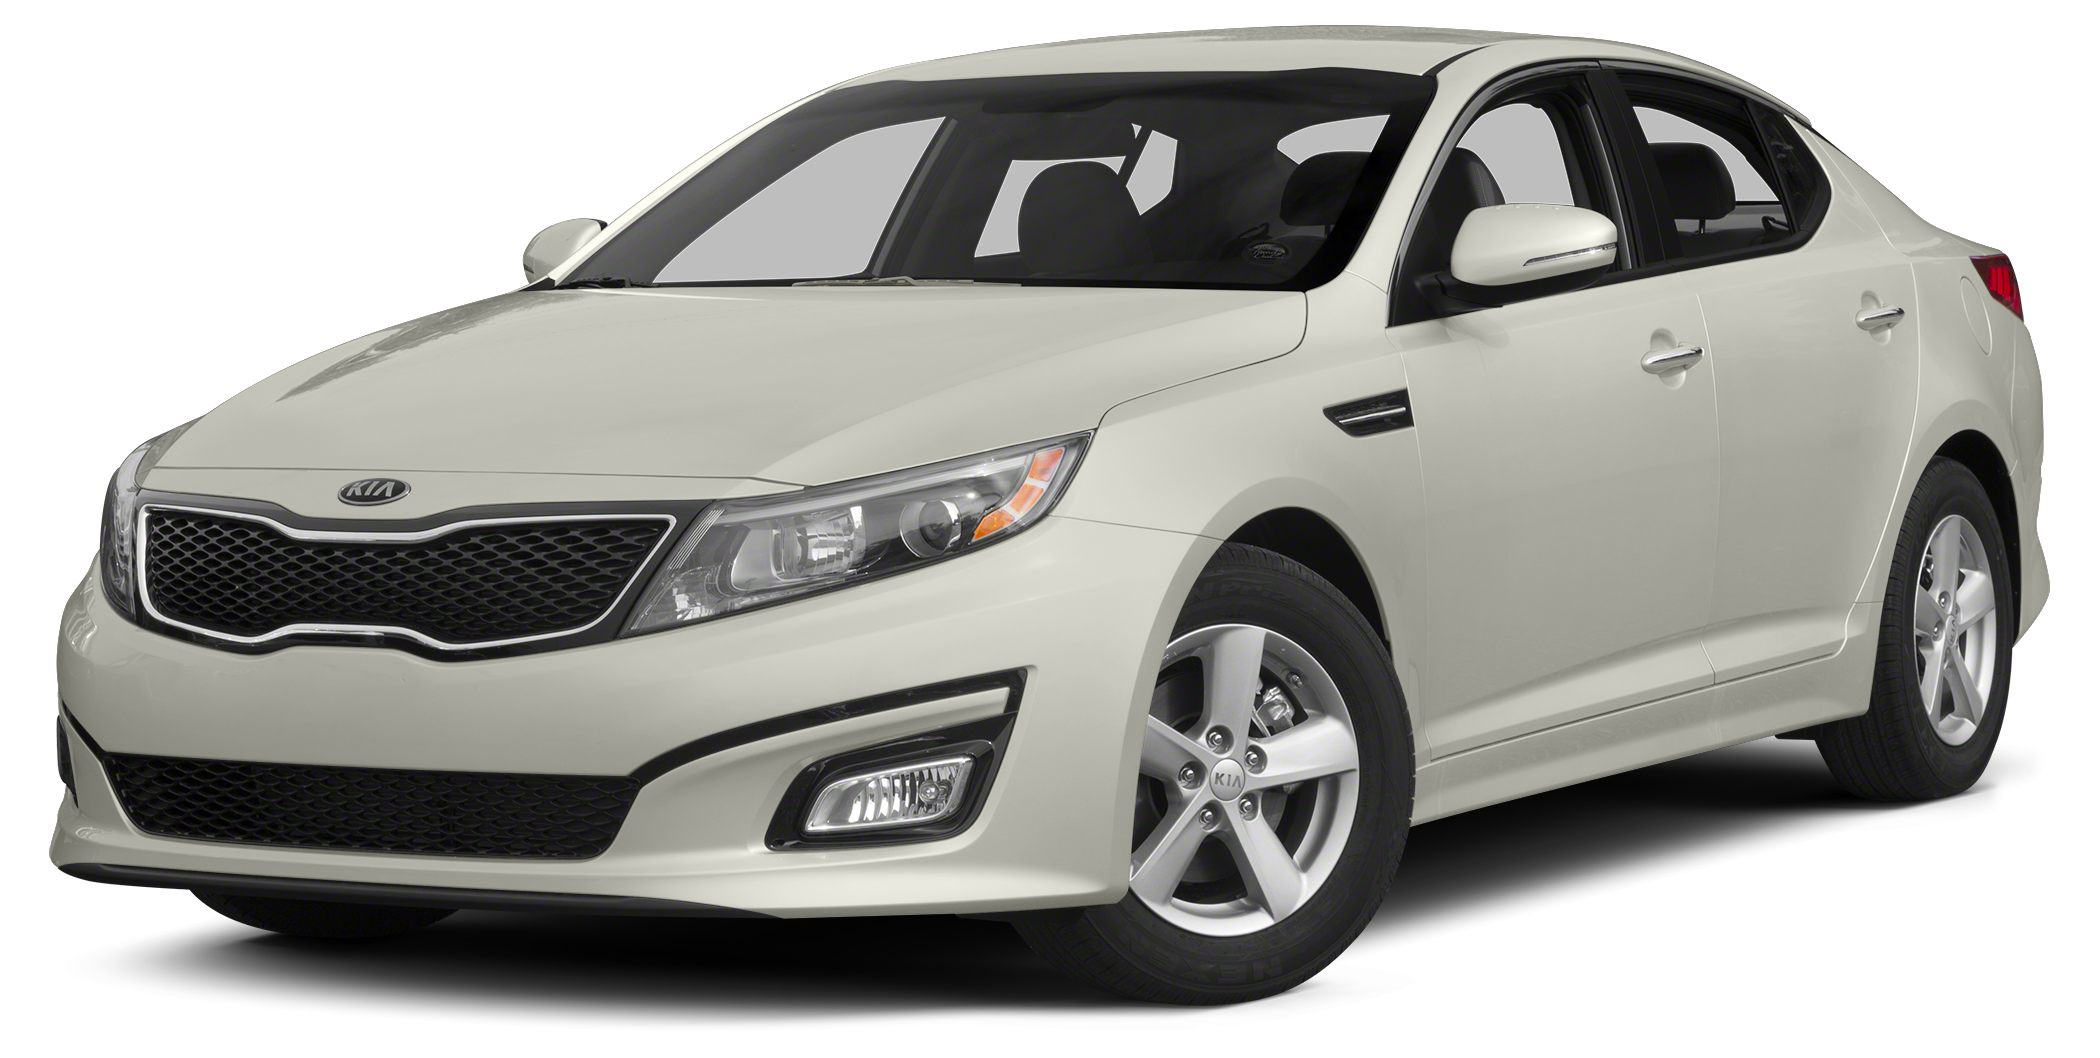 2015 Kia Optima EX Miles 20135Color Snow White Pearl Stock K14371A VIN 5XXGN4A78FG396530